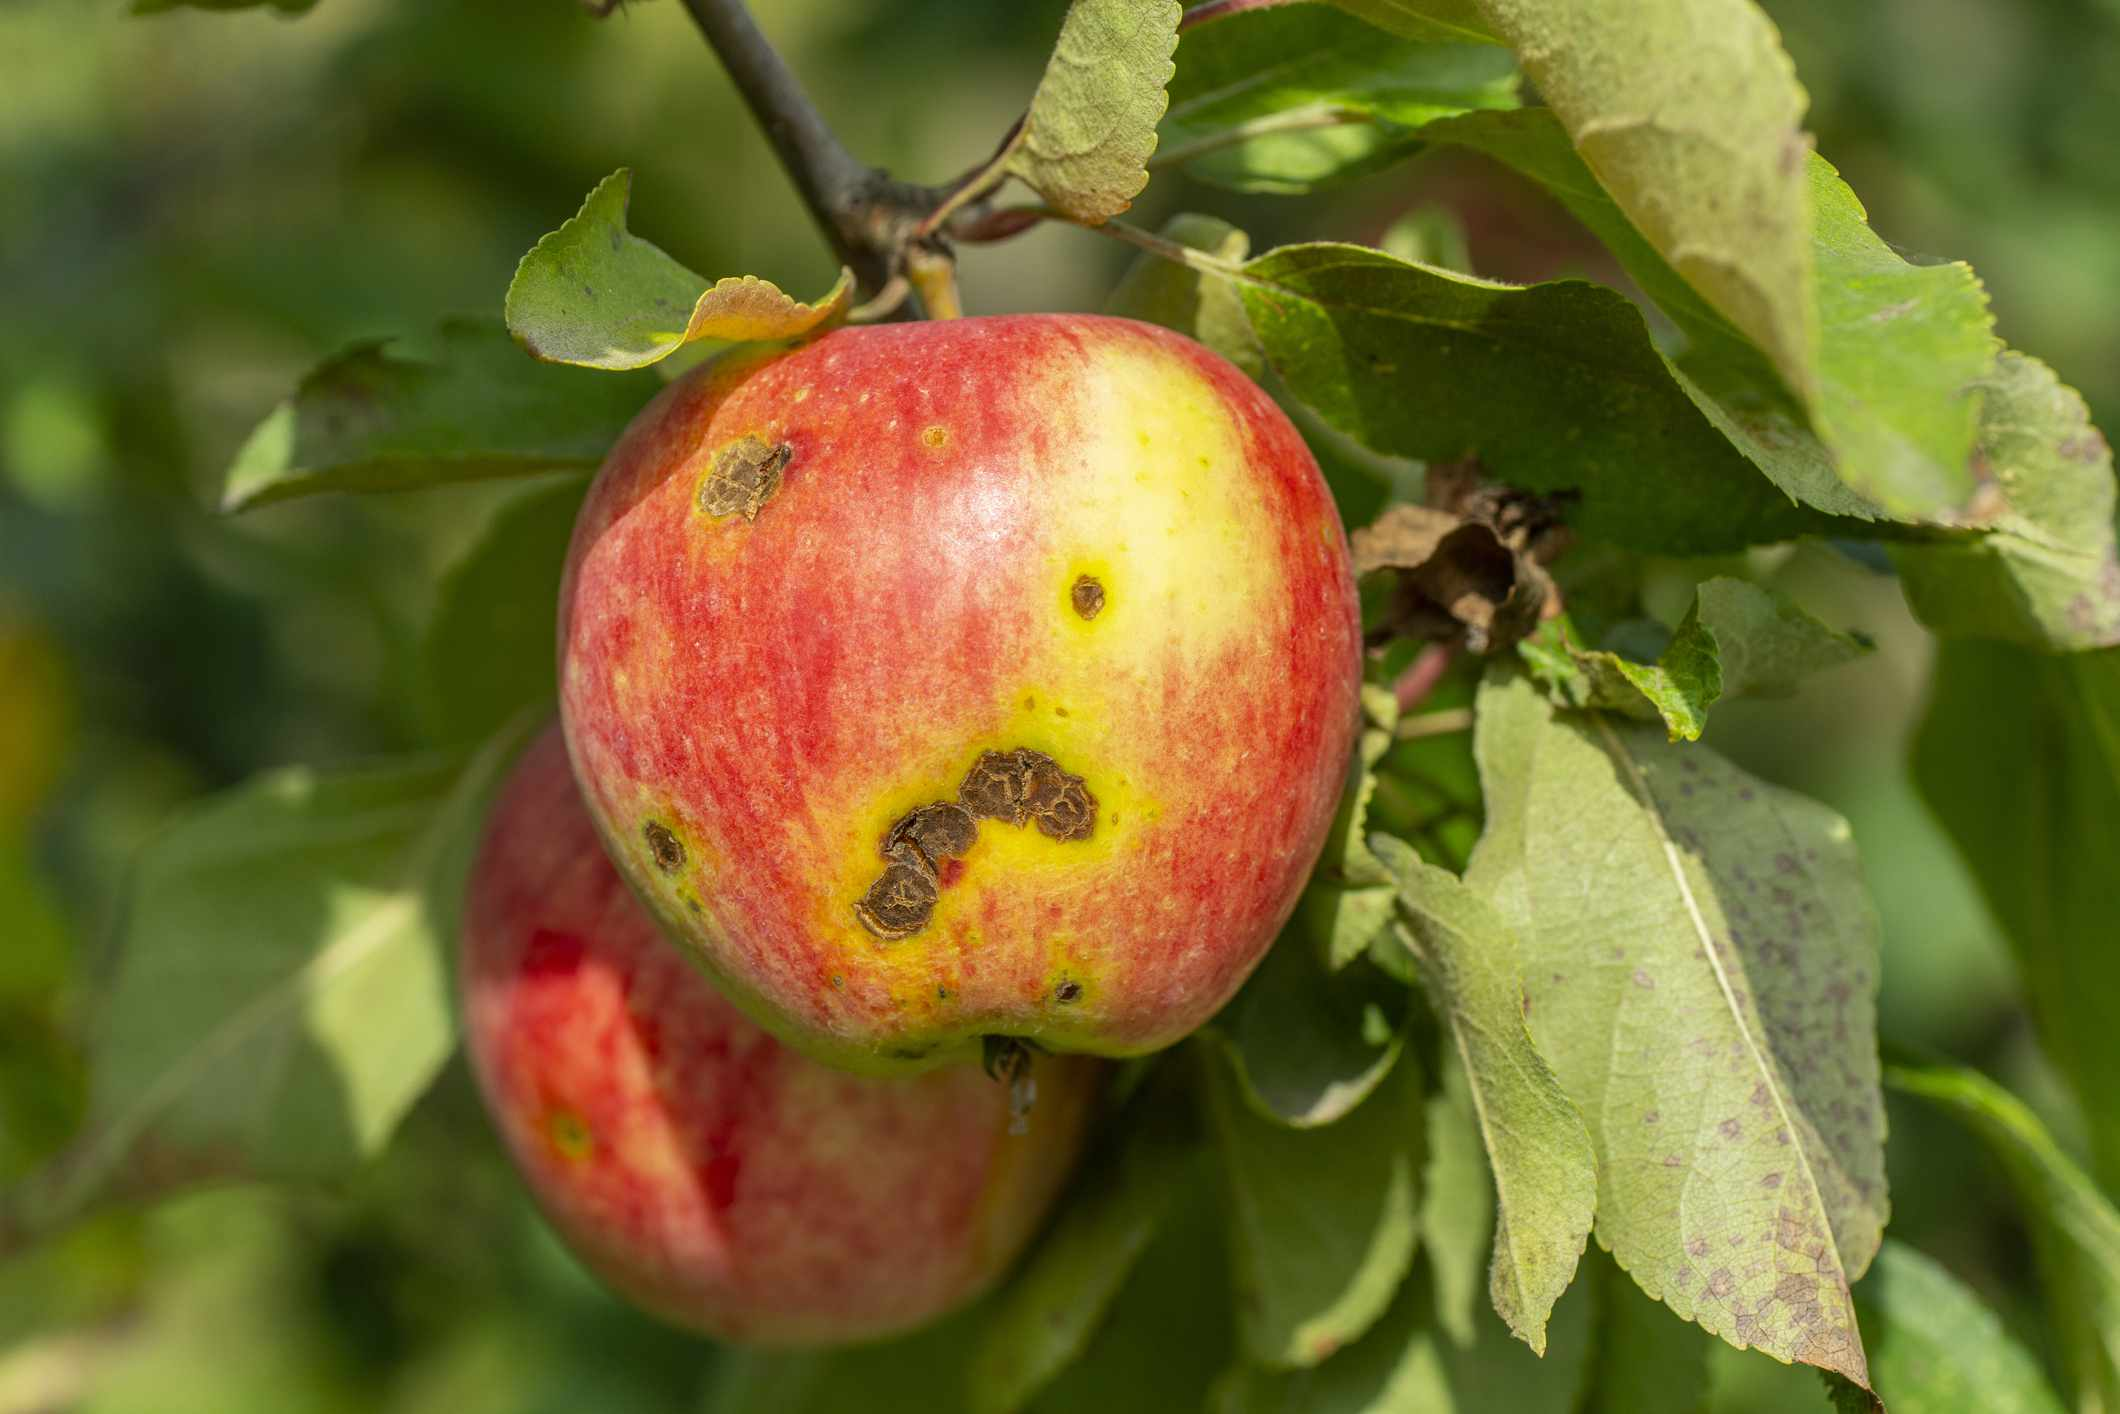 Lesions on apple infected with apple scab (Venturia inaequalis)